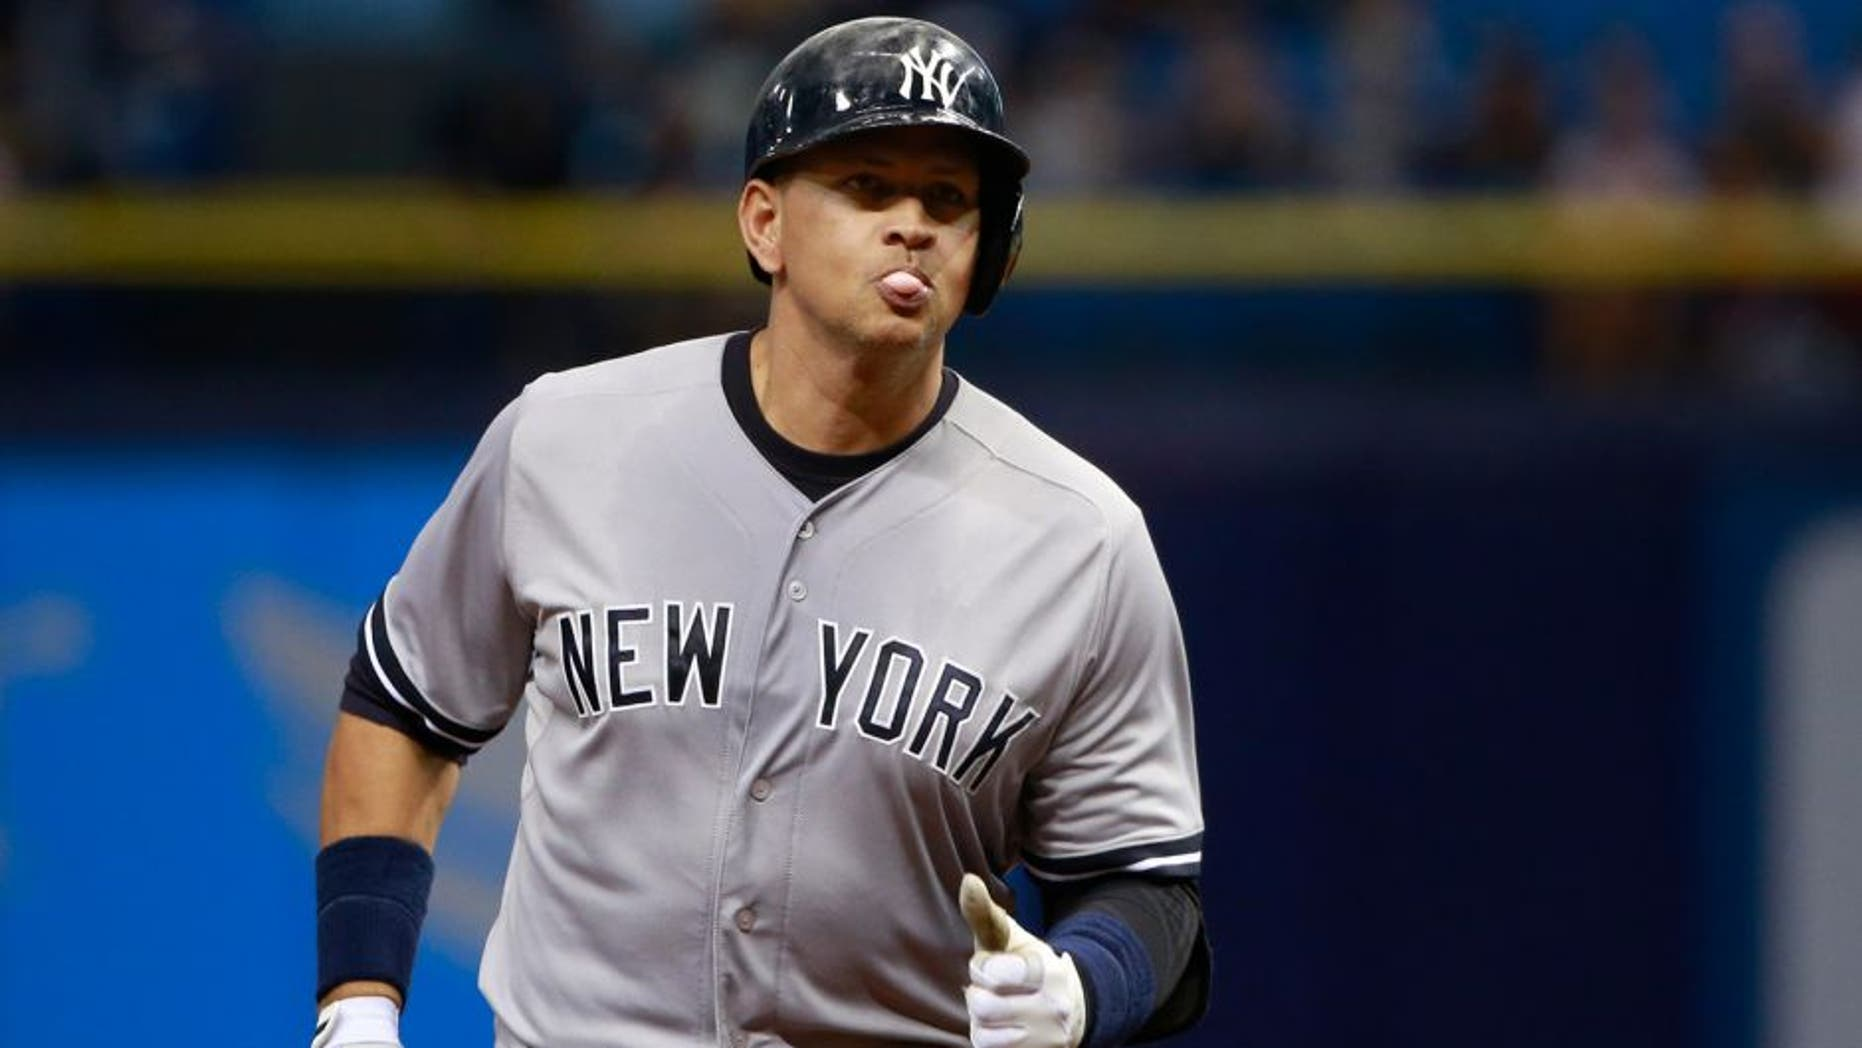 Sep 15, 2015; St. Petersburg, FL, USA; New York Yankees designated hitter Alex Rodriguez (13) hits a solo home run during the first inning against the Tampa Bay Rays at Tropicana Field. Mandatory Credit: Kim Klement-USA TODAY Sports